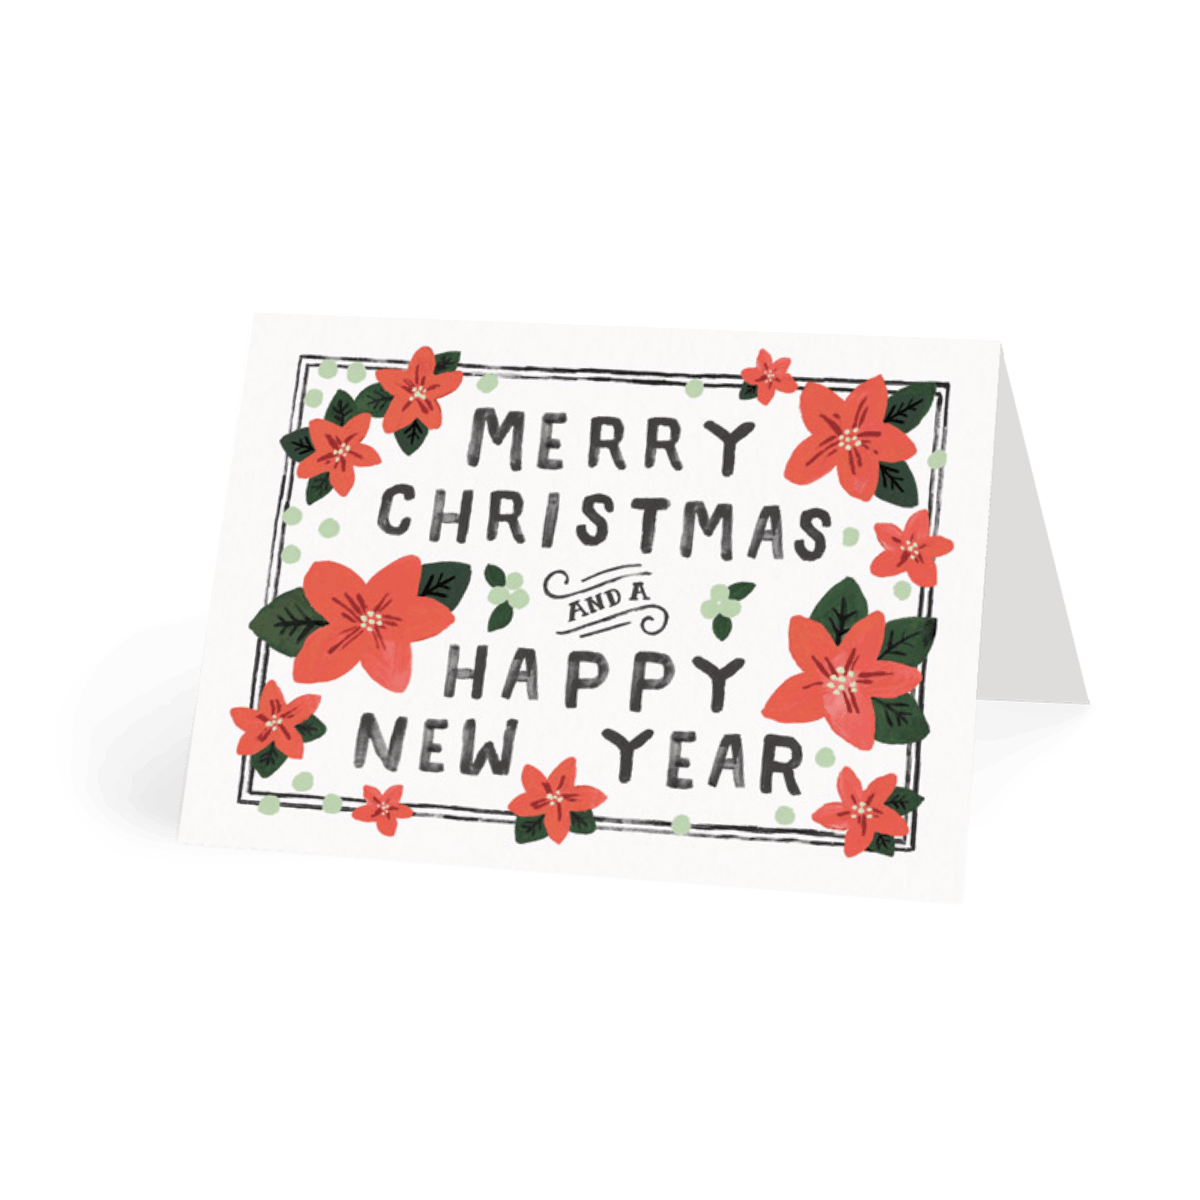 Https%3a%2f%2fwww.papier.com%2fproduct image%2f10002%2f14%2fchristmas poinsettia 2543 front 1568147370.png?ixlib=rb 1.1